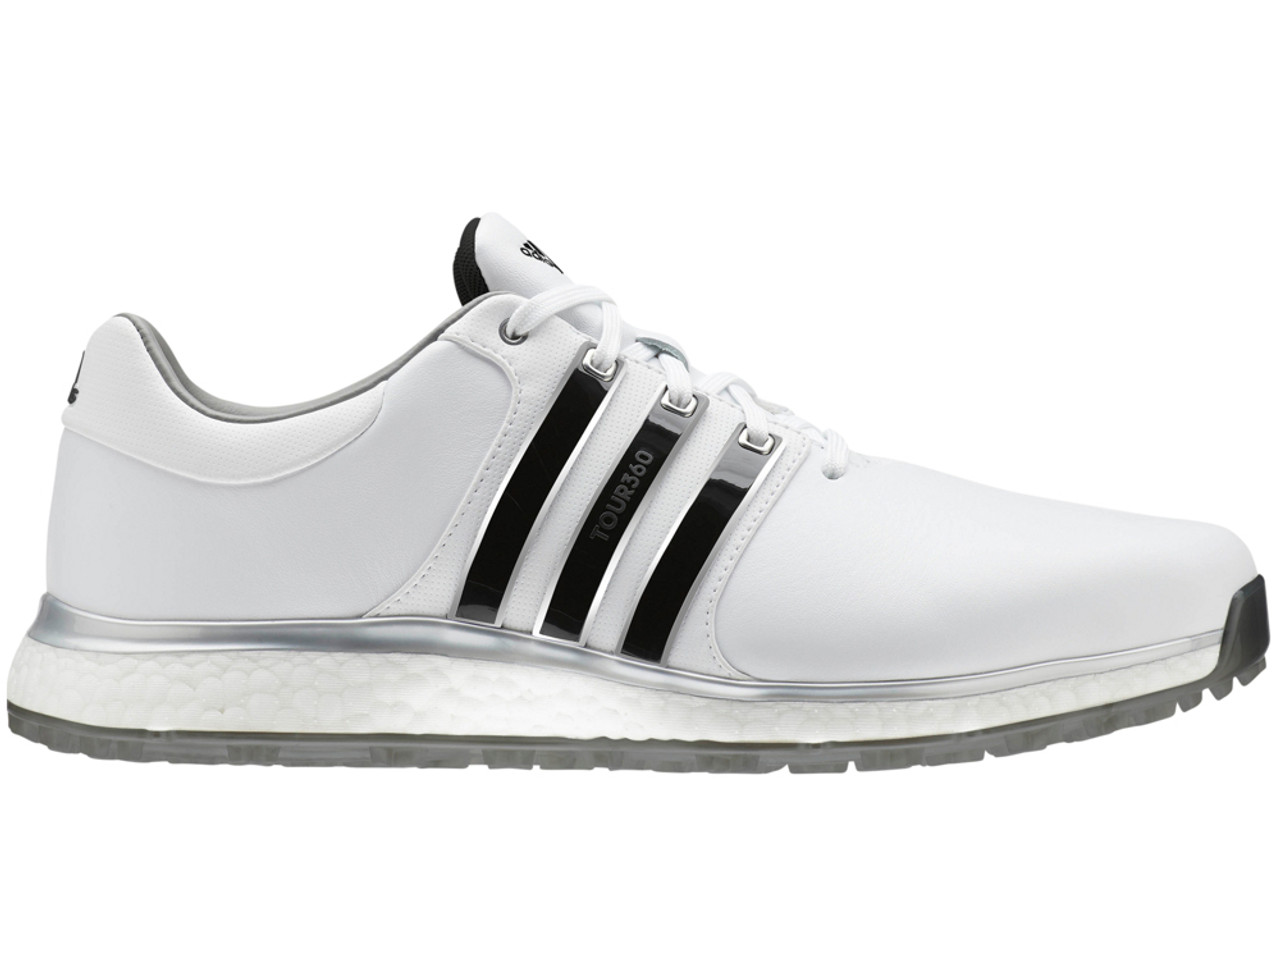 4da10321d9f Adidas Tour360 XT-SL Golf Shoes - FTWR White Silver Met. - Mens For ...